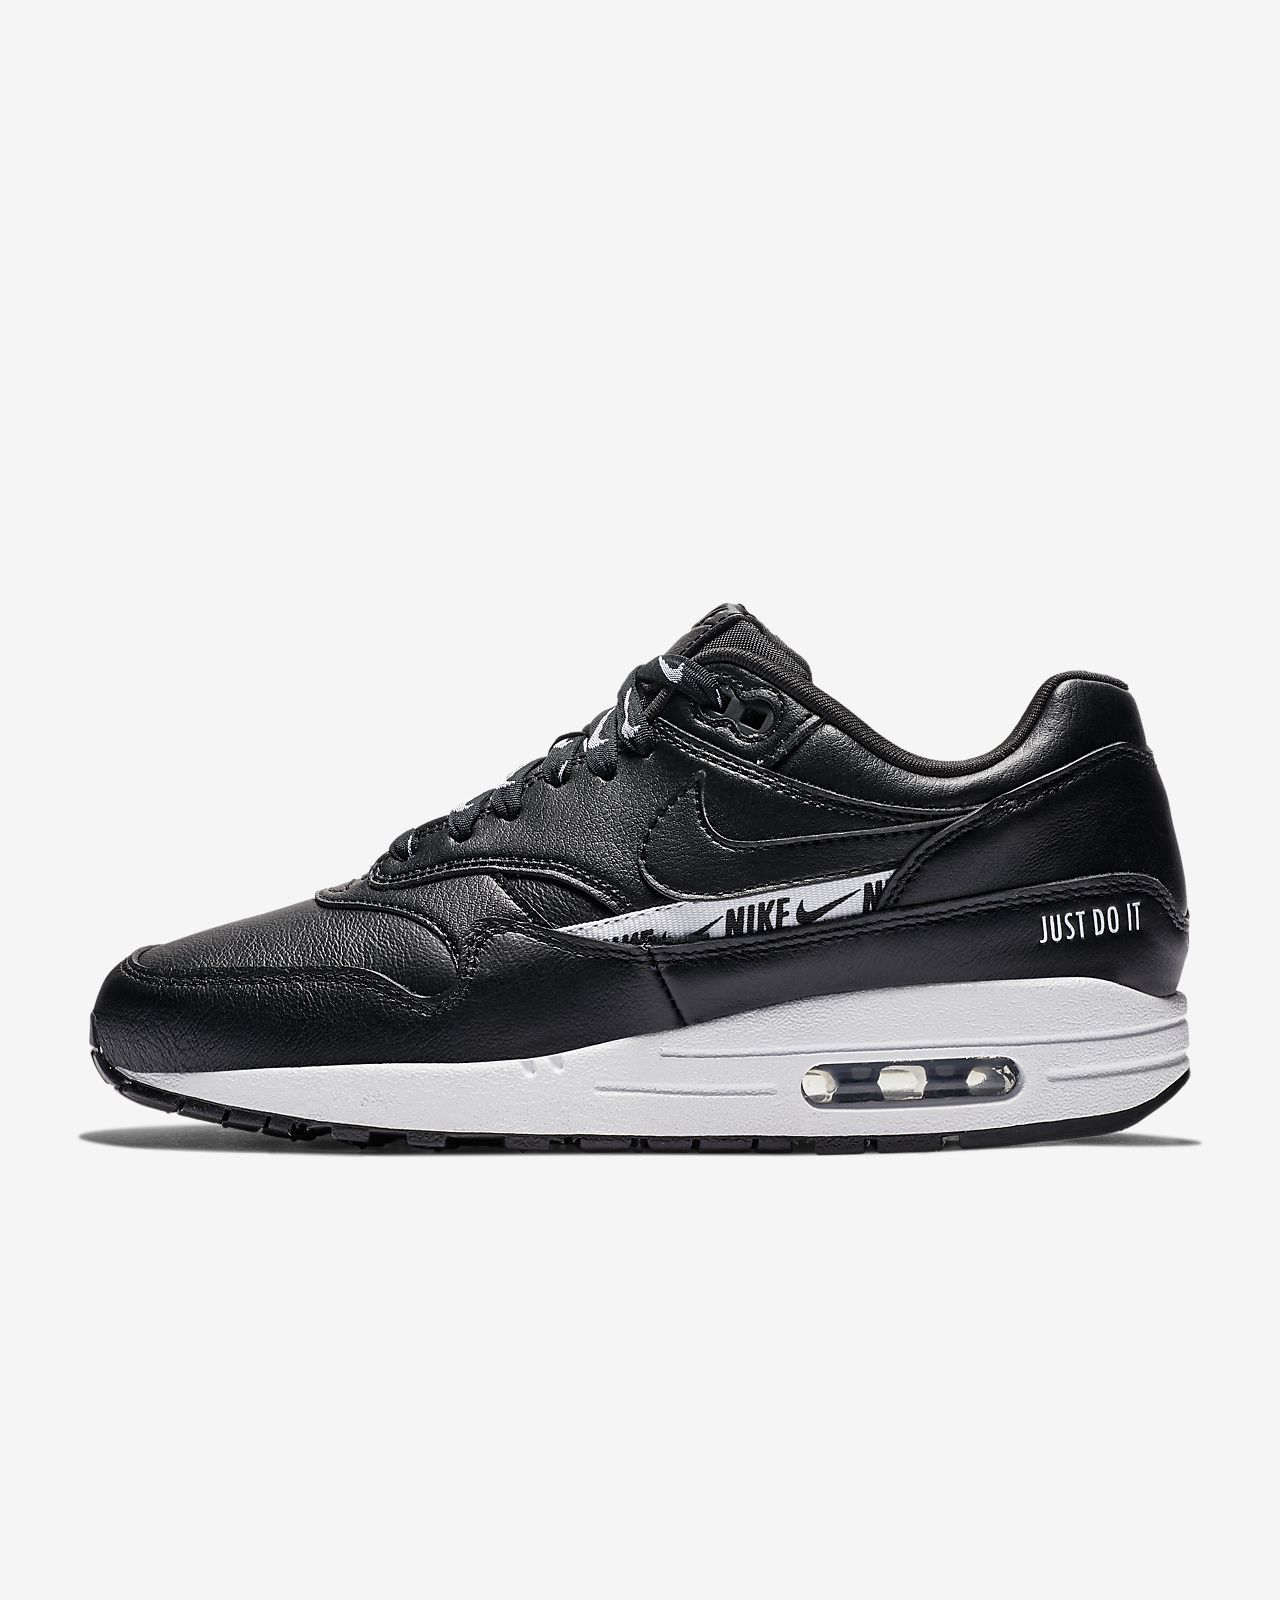 Nike Air Max 1 SE Overbranded Women s Shoe. Nike.com AT 844c9b06f